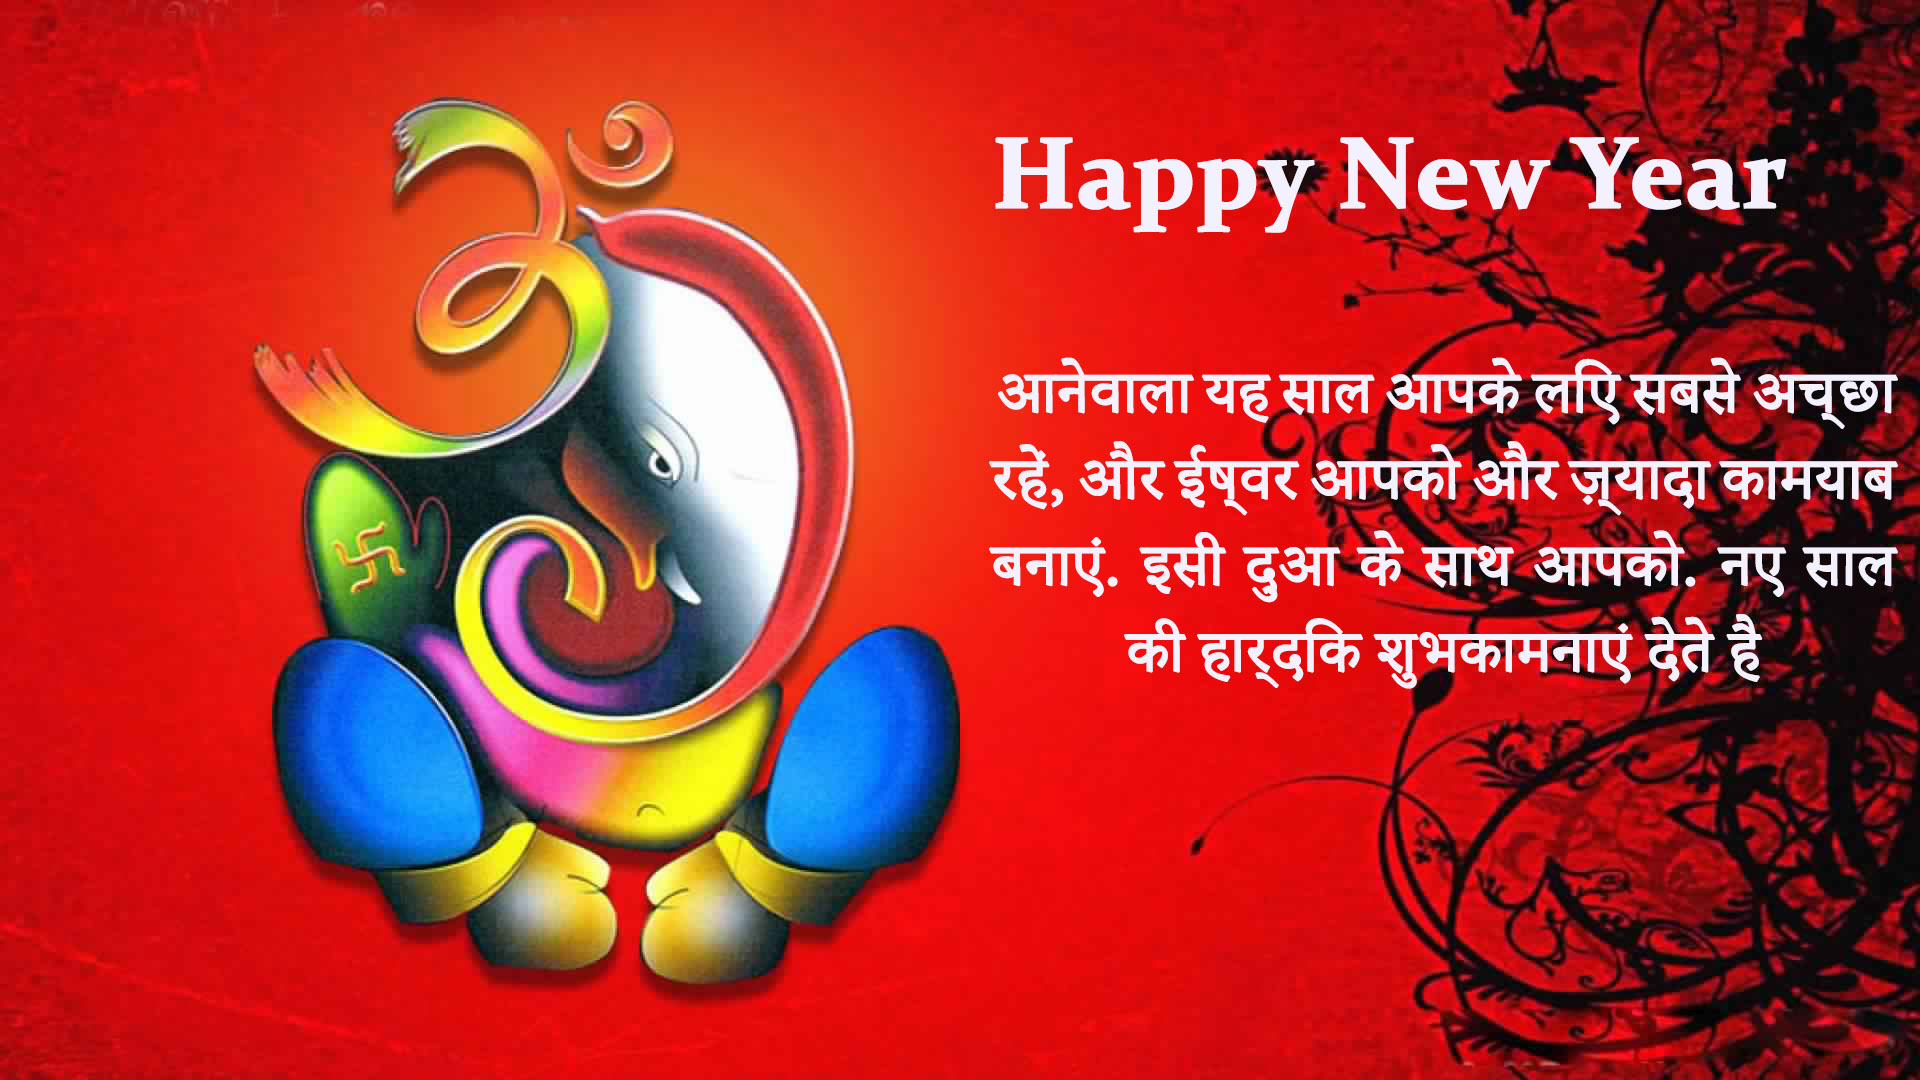 Hindu Nav Varsh Beautiful Happy New Year Wallpaper